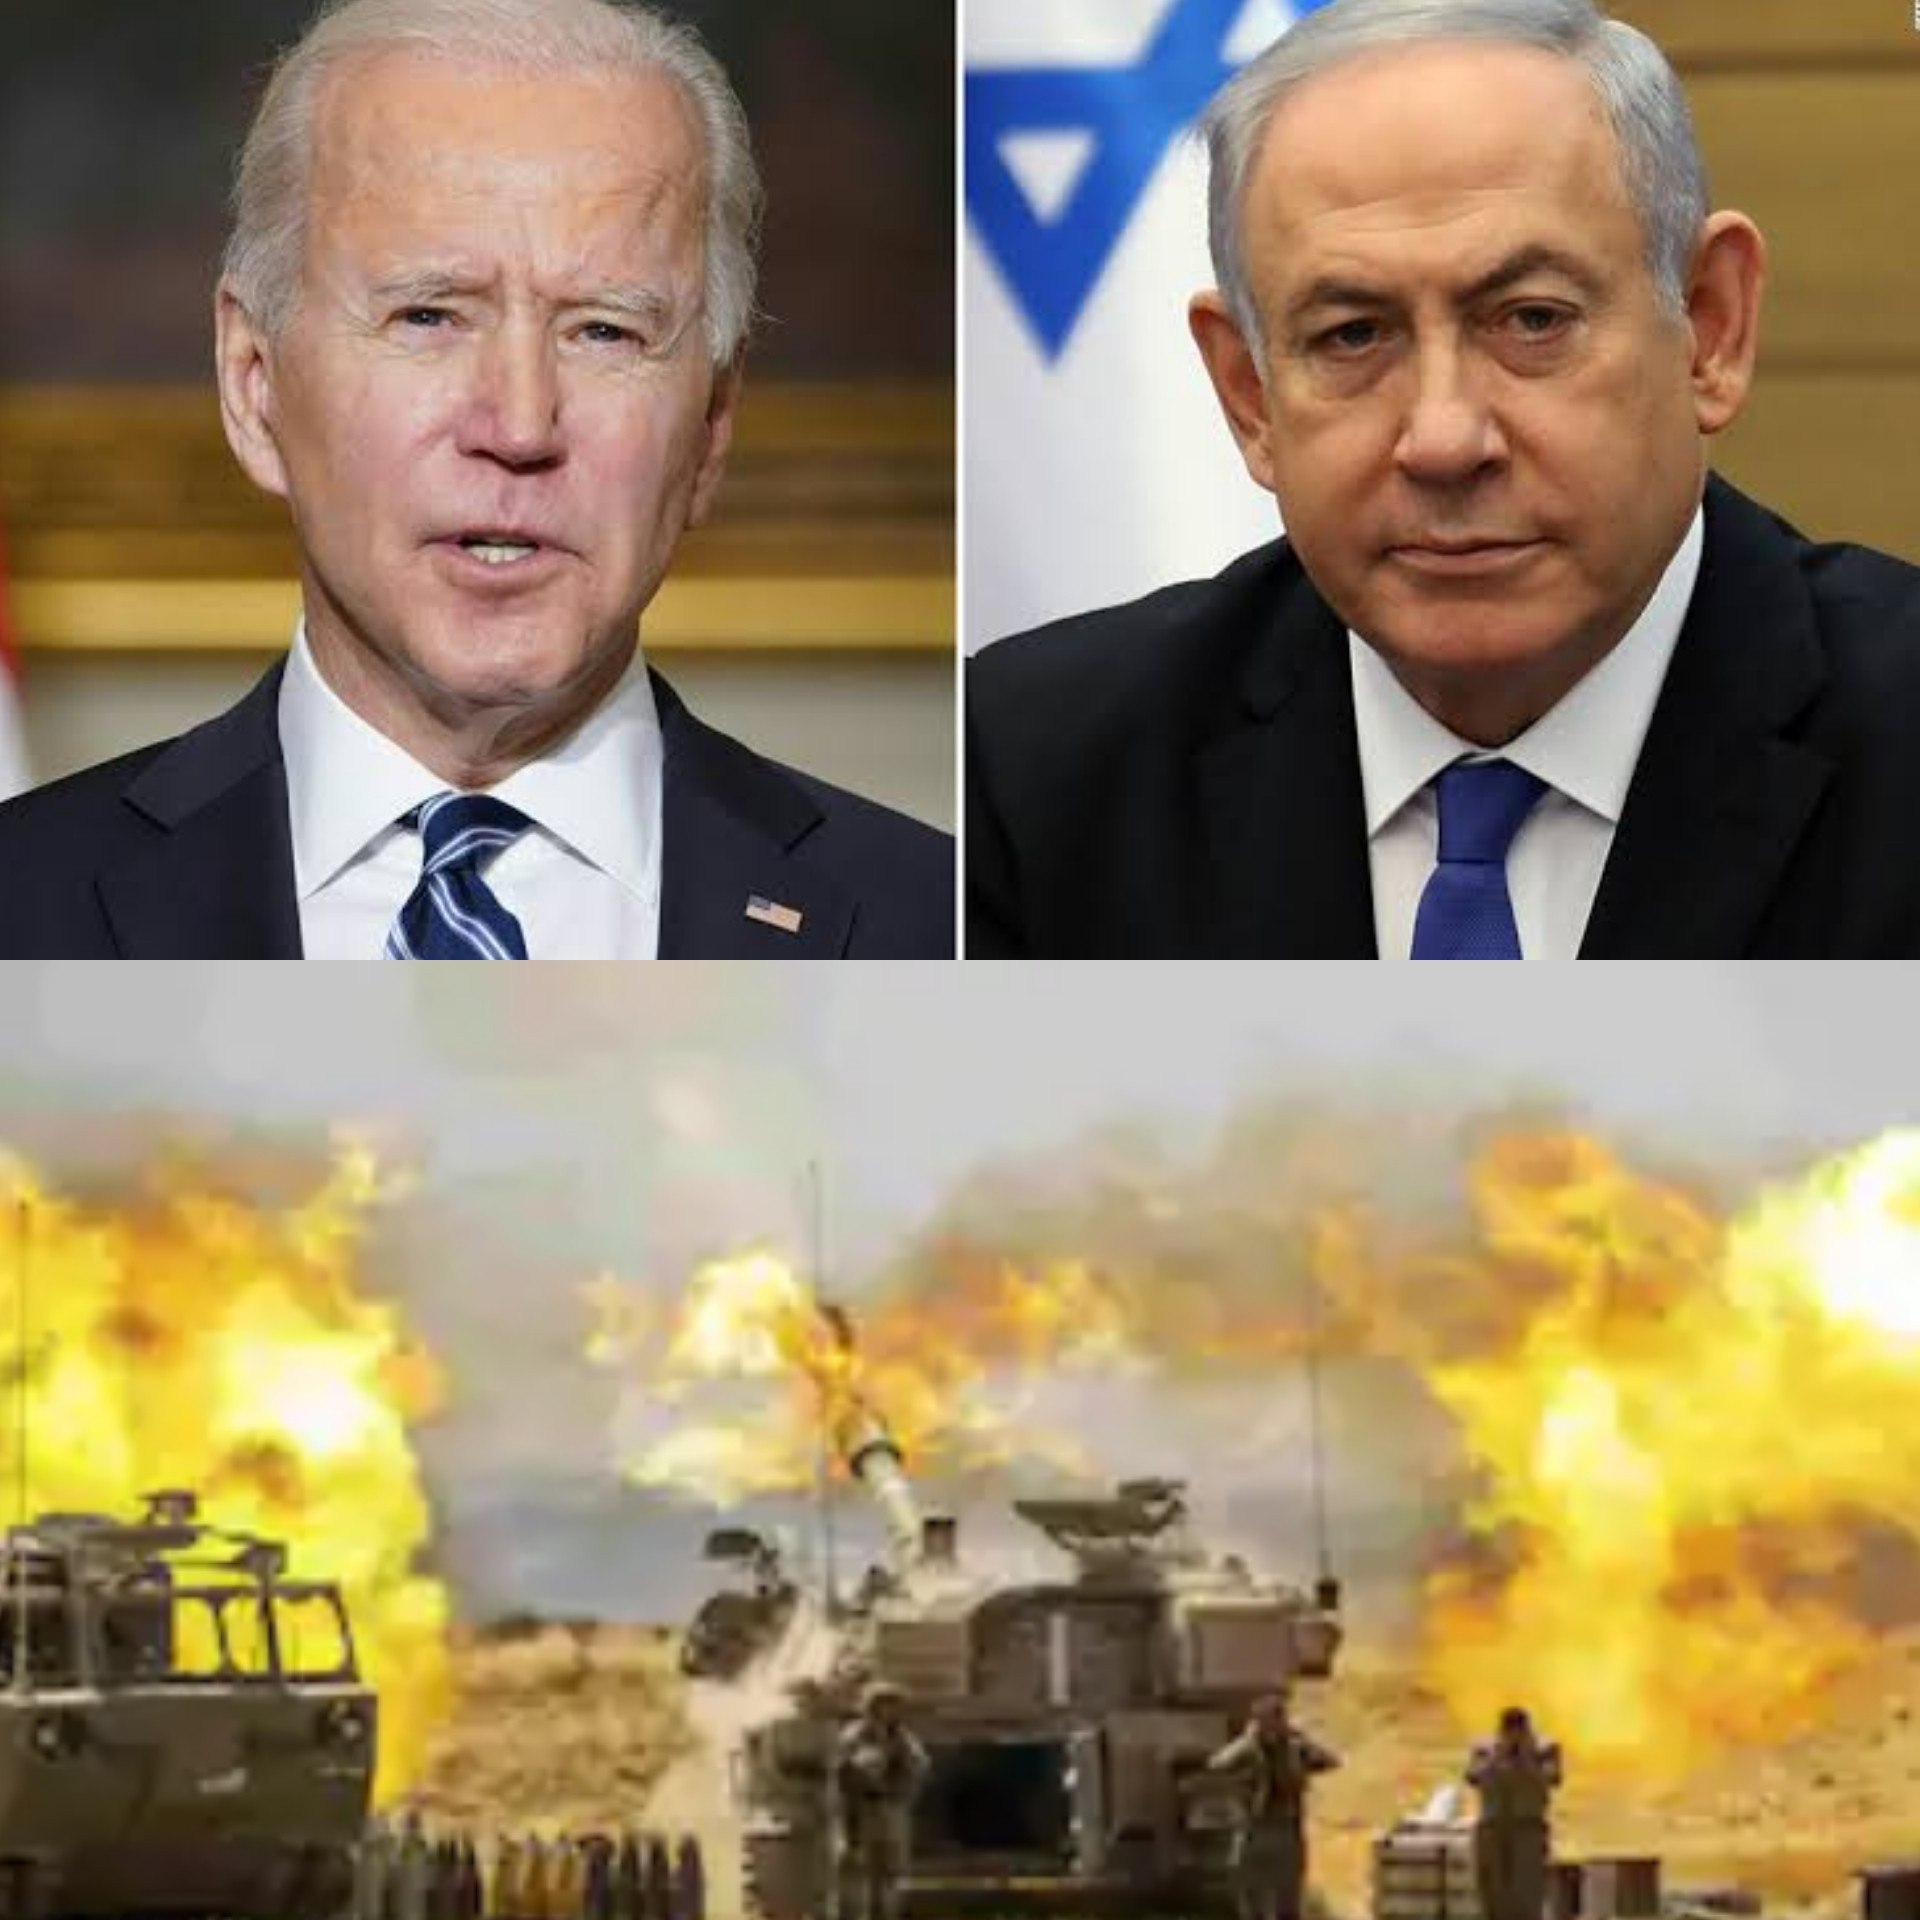 Israeli Prime Minister Benjamin Netanyahu vows to keep on with attacks against Hamas as he rejects Bidens call for 'significant de escalation in Gaza conflict